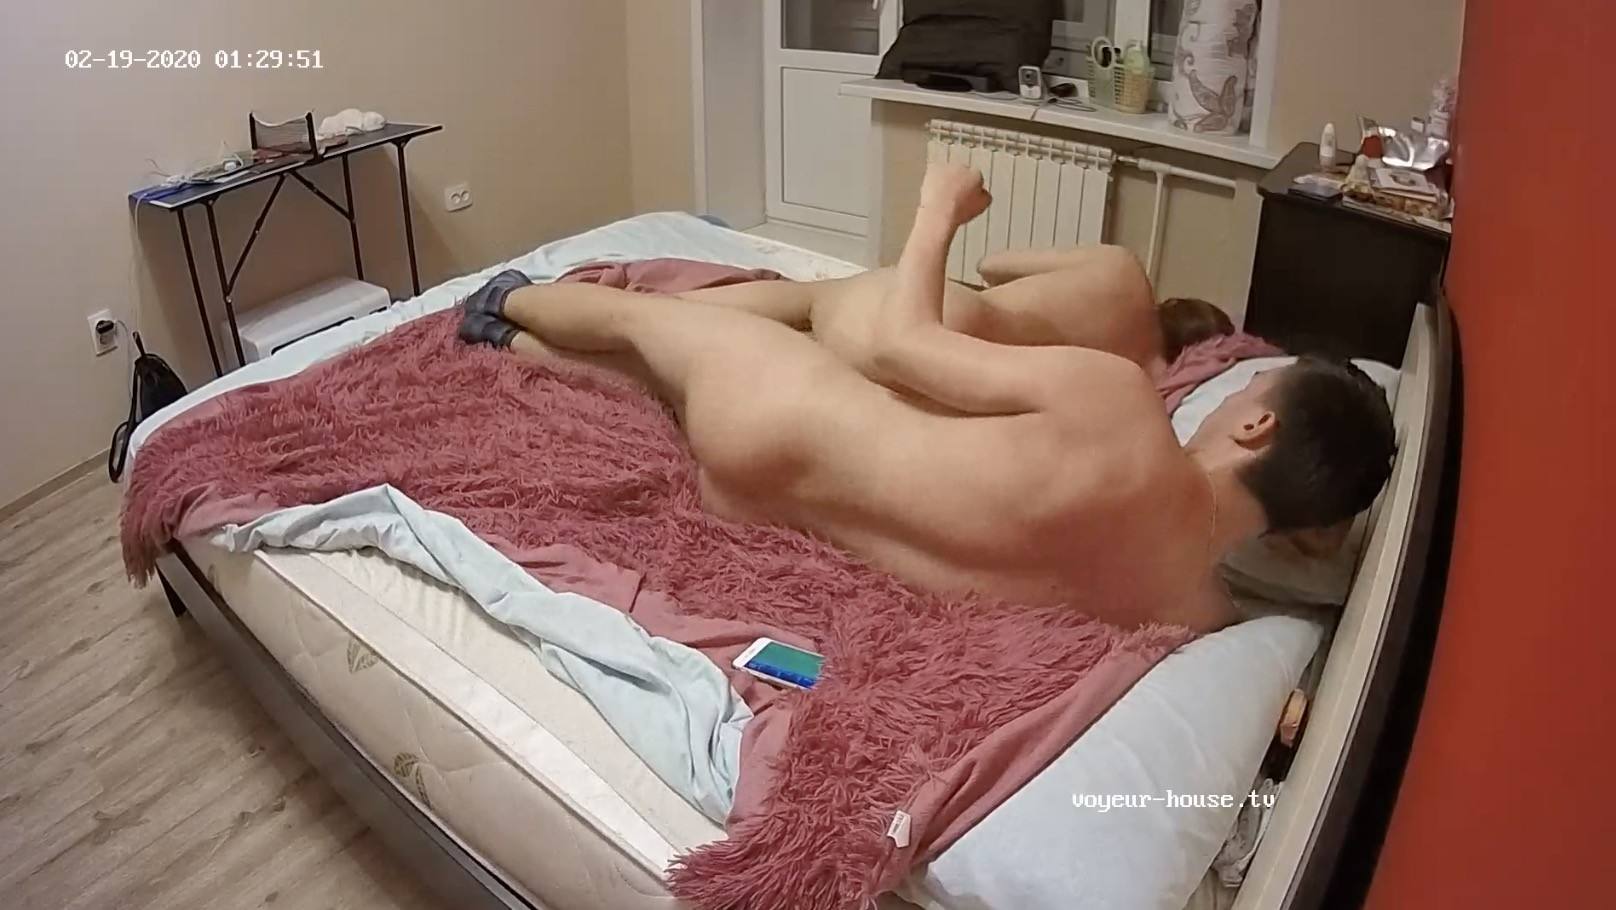 Hugo and Beverley have sex on the bed, Feb 19